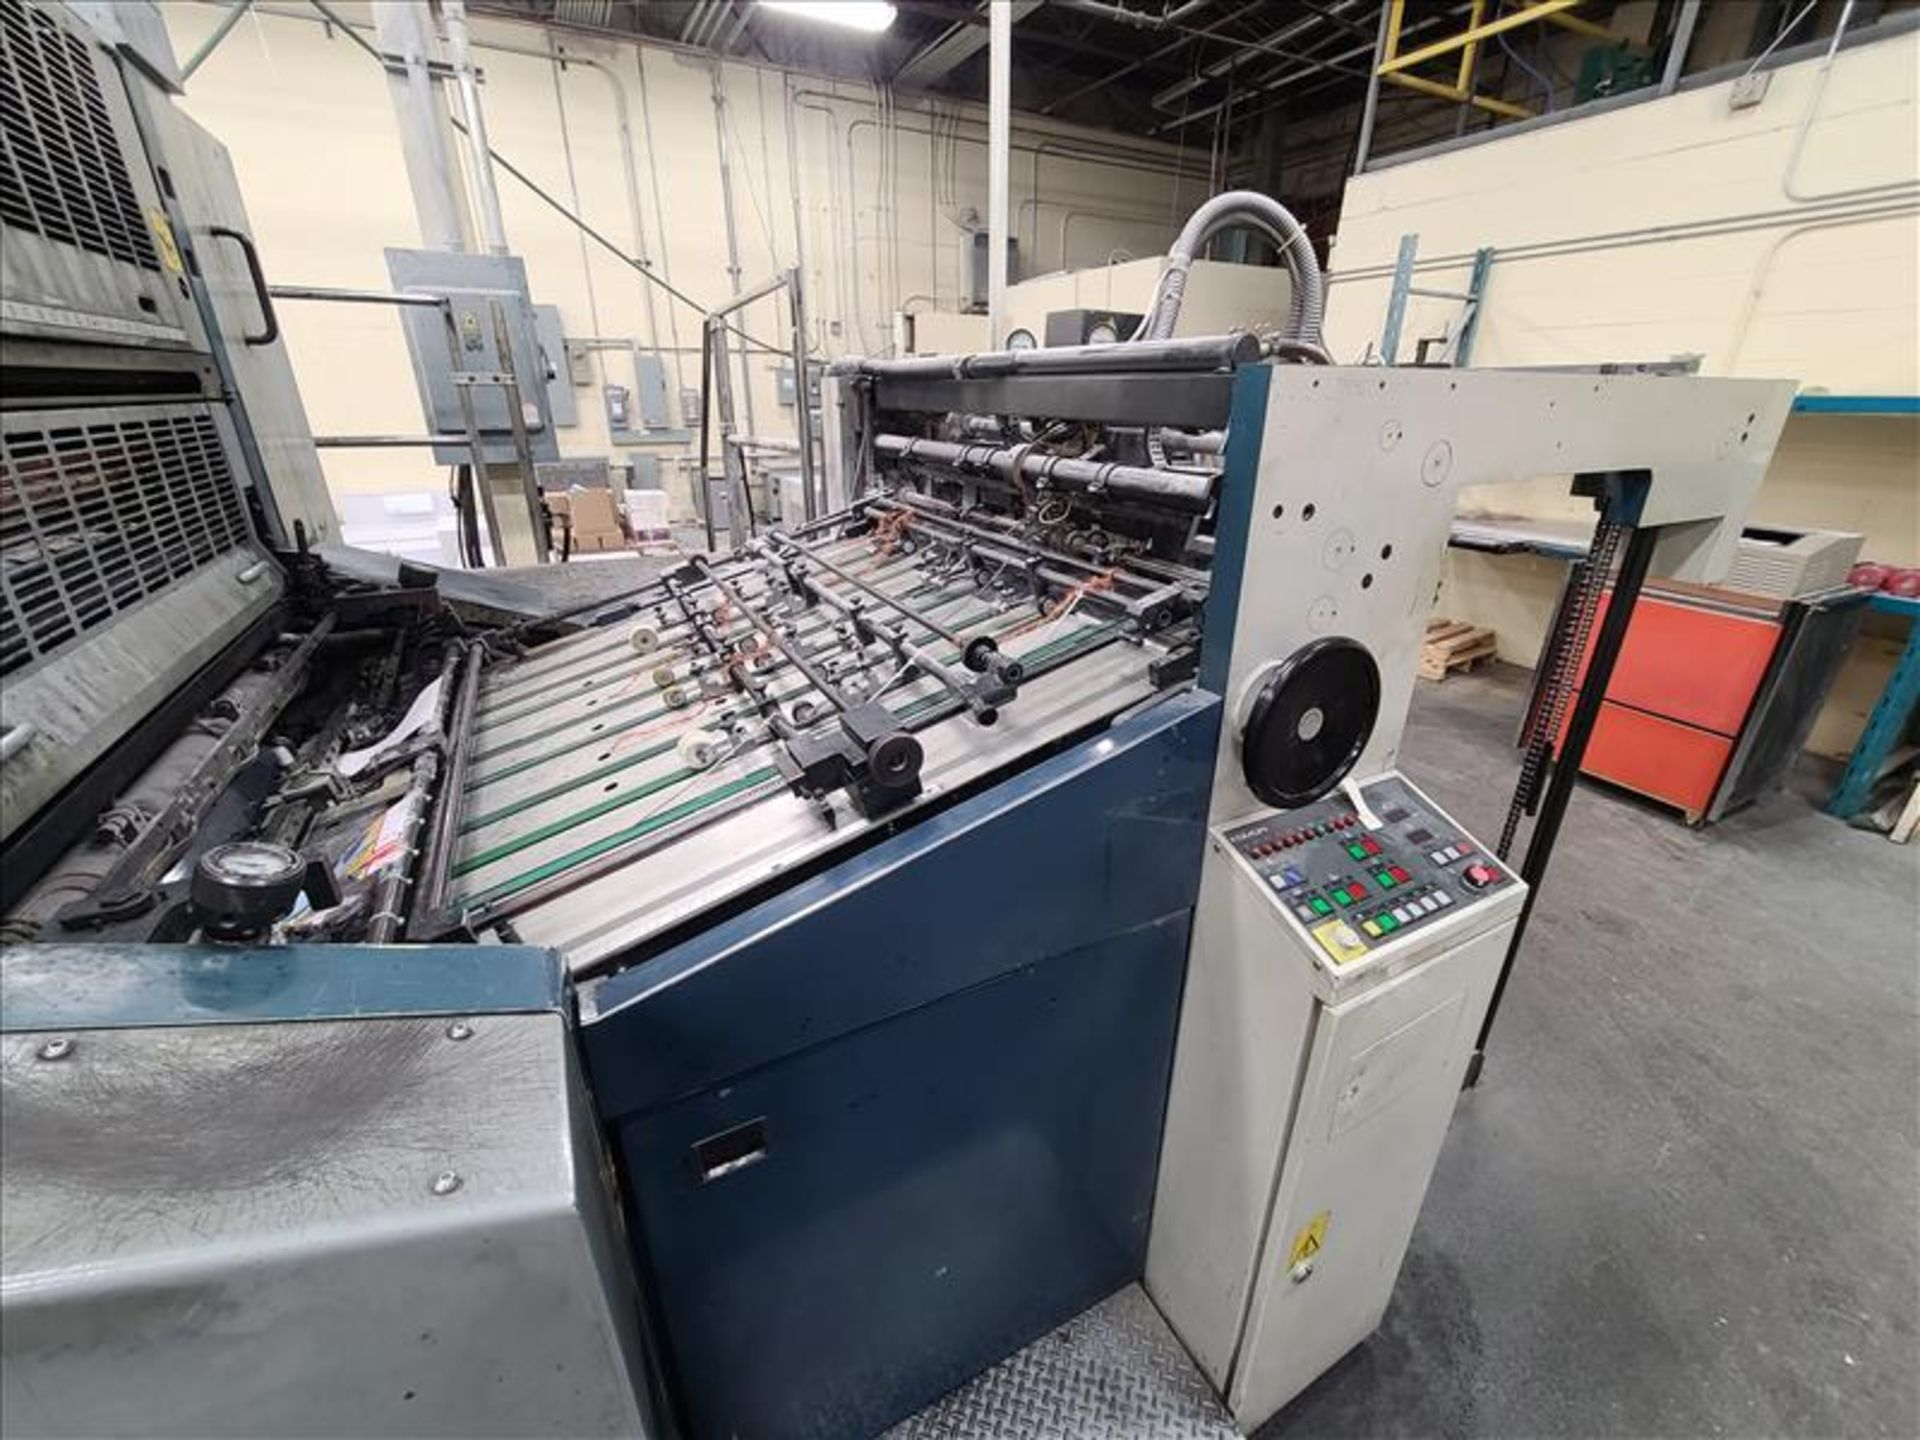 Komori 4-color offset printing press, Series Lithrone 40, model L-440, S/N.2202 approx. 68 - Image 7 of 22